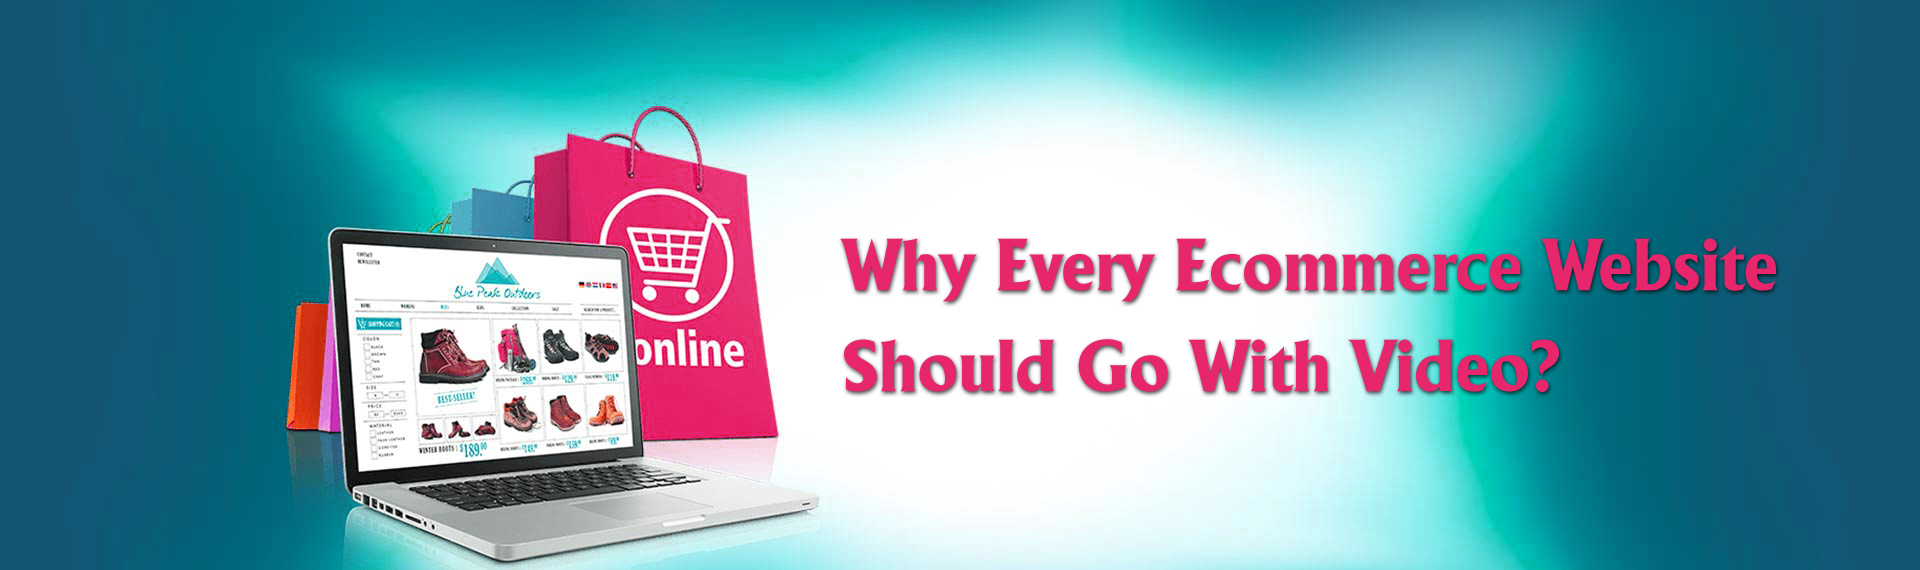 Why Every Ecommerce Website Should Go With Video?